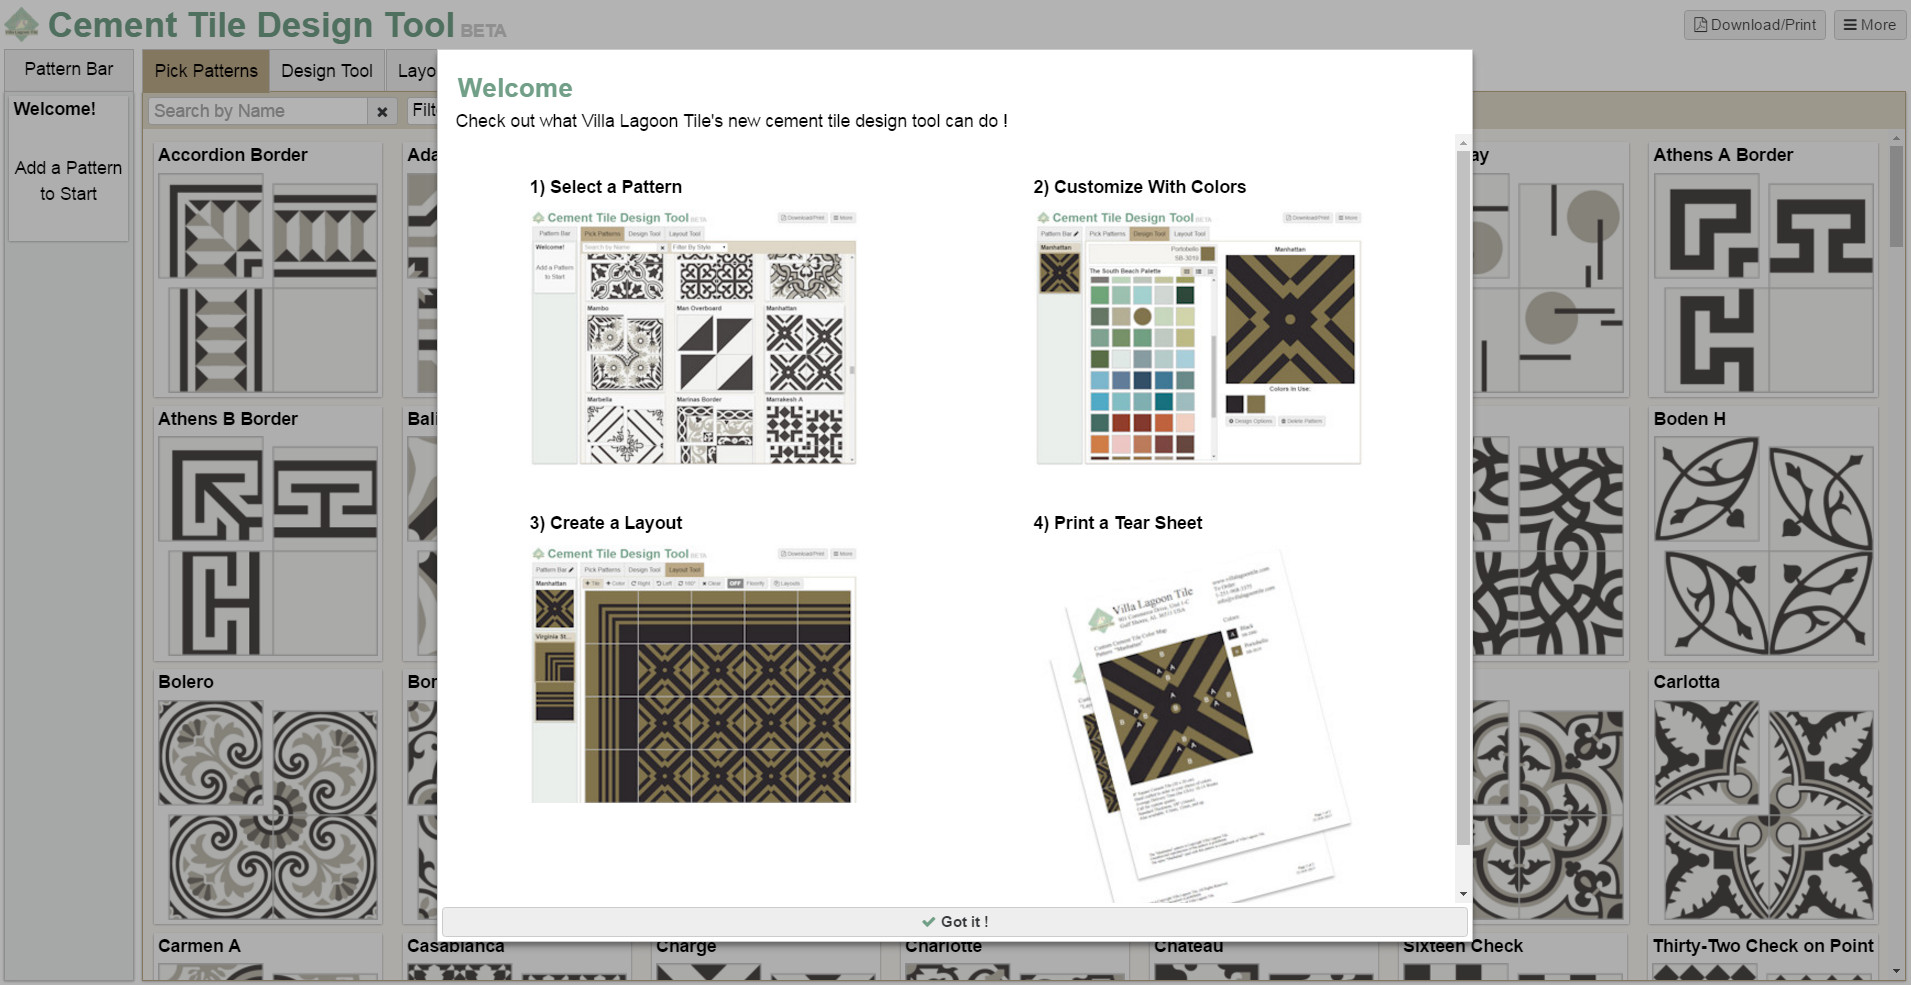 Screenshot of our tile design tool's welcome page.